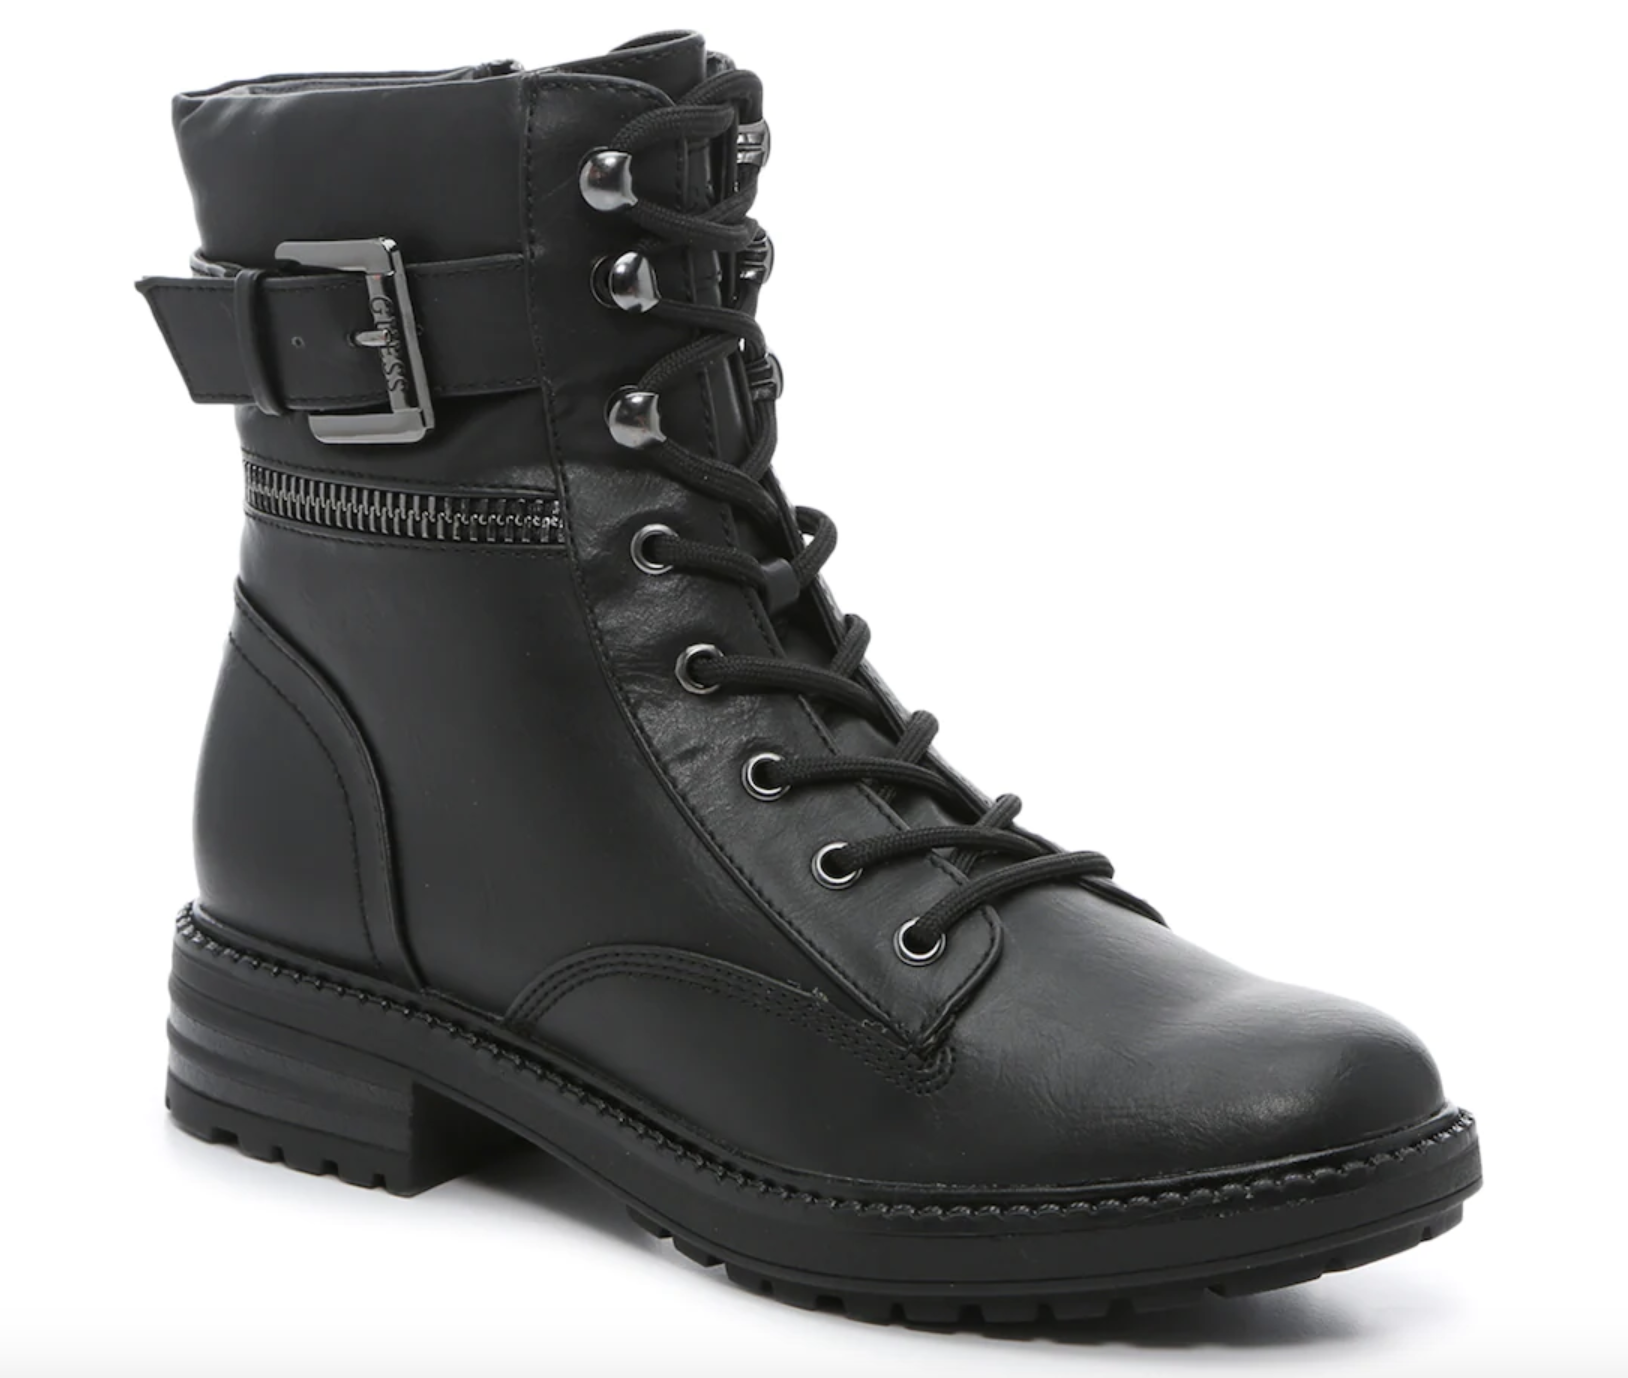 Guess, lug-sole boots